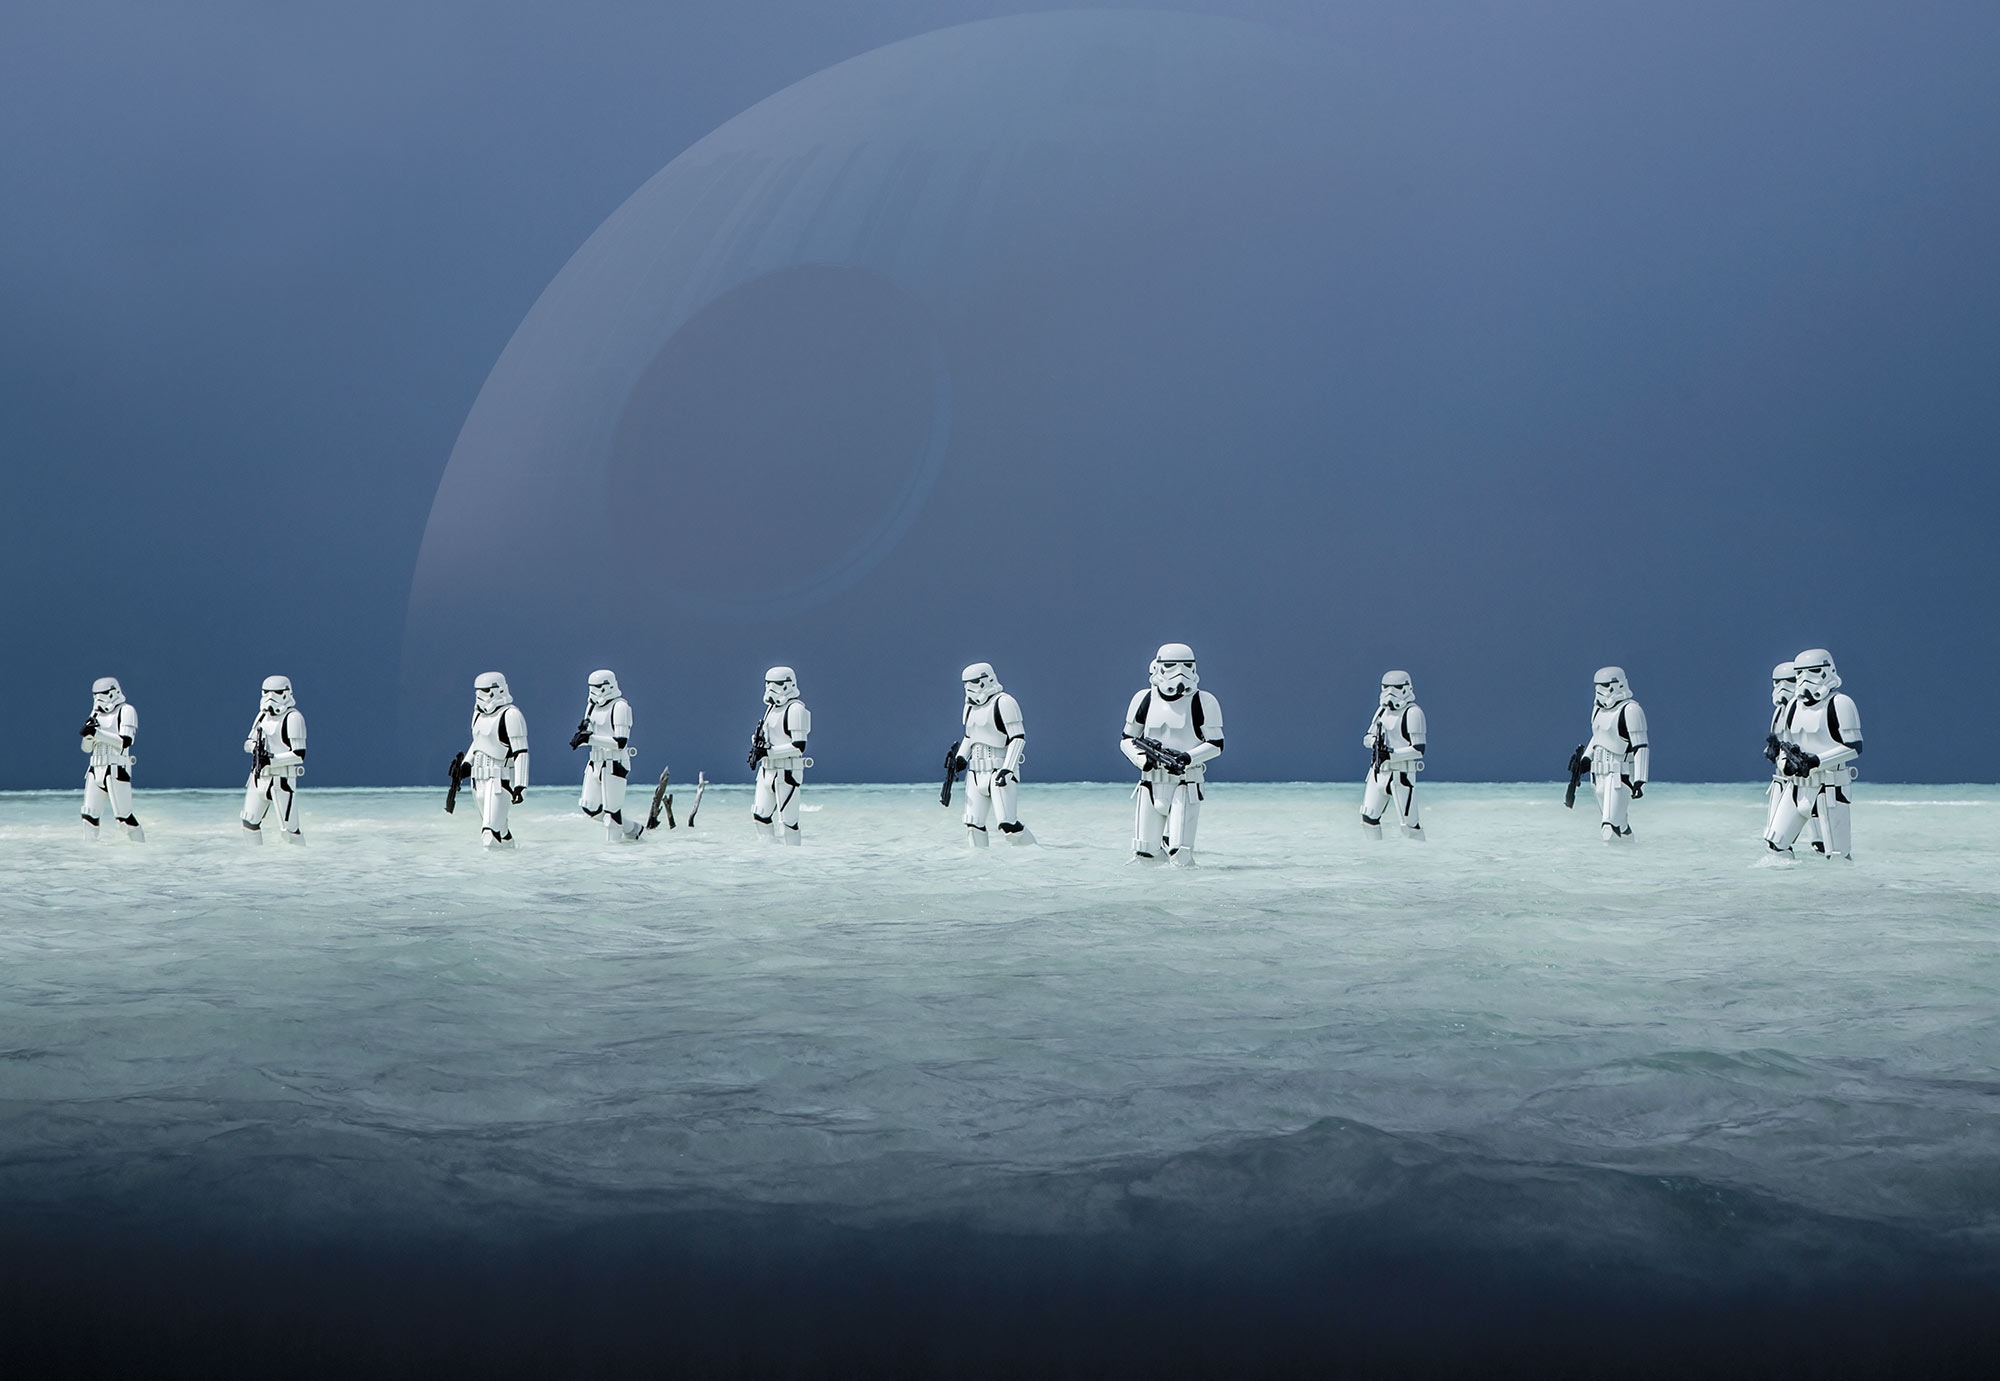 Photomural Quot Star Wars Scarif Beach Quot From Star Wars